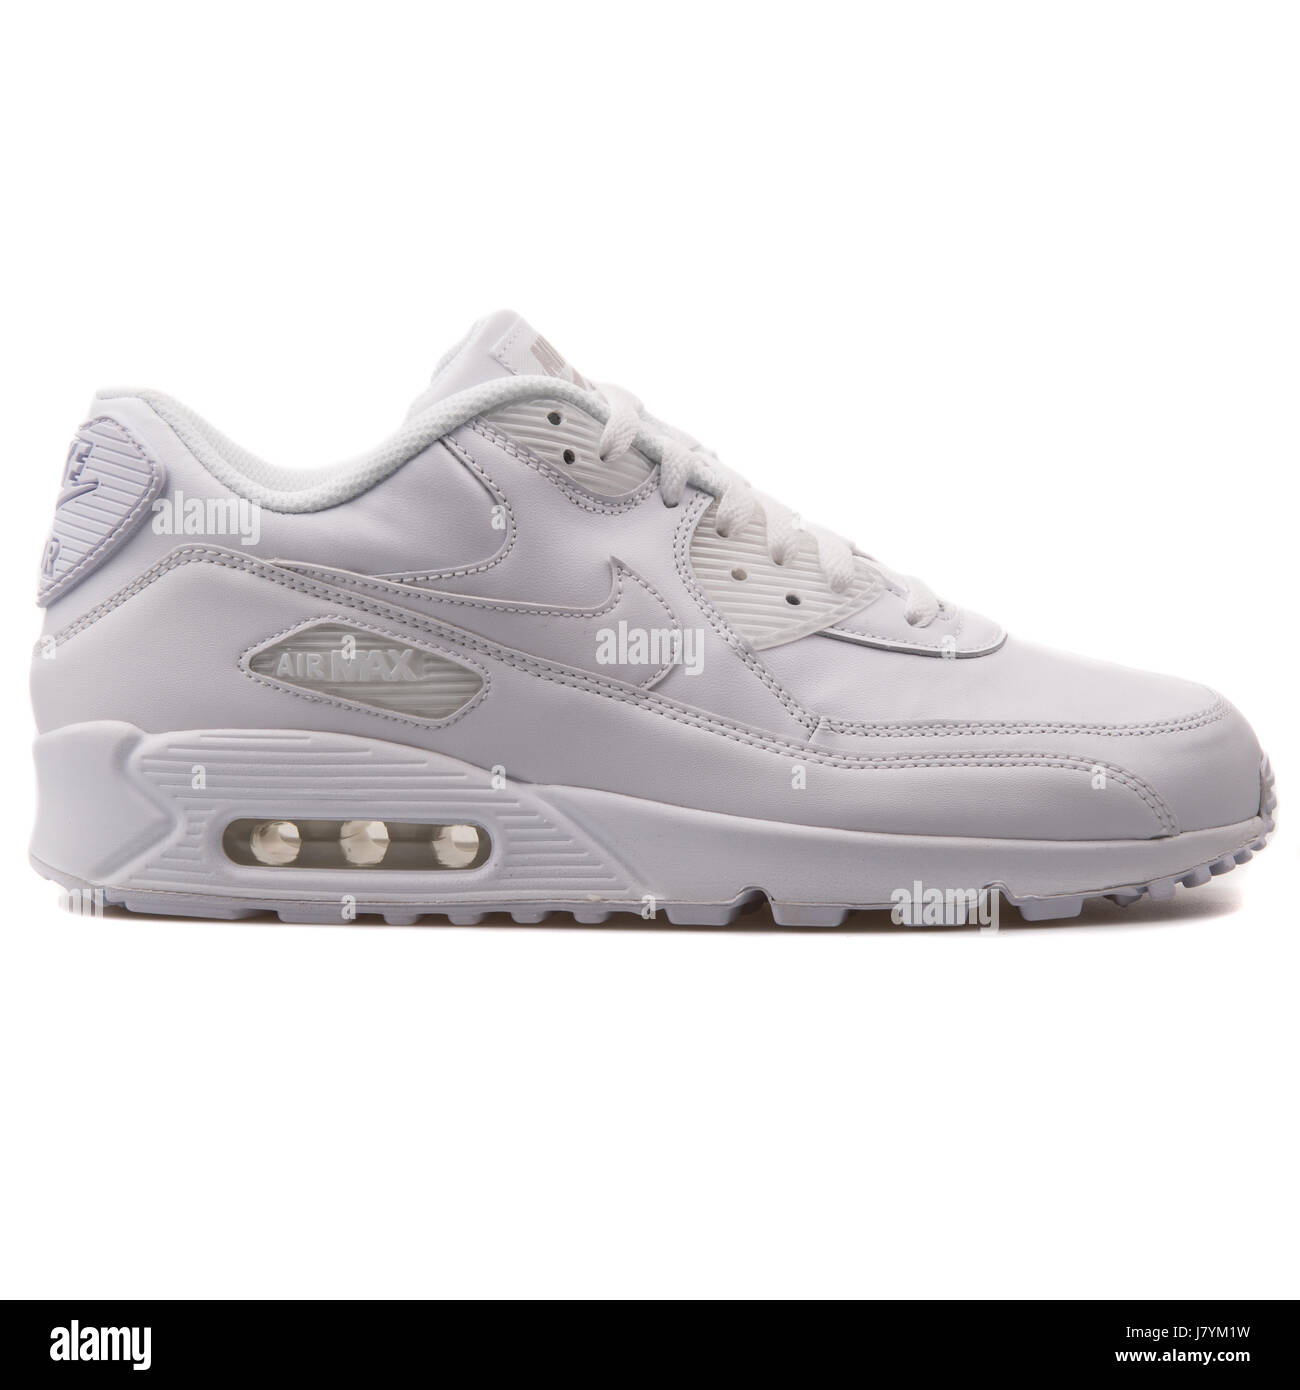 114fd084 Nike Air Max 90 Leather White Men's Leather Sports Sneakers - 302519-113 -  Stock